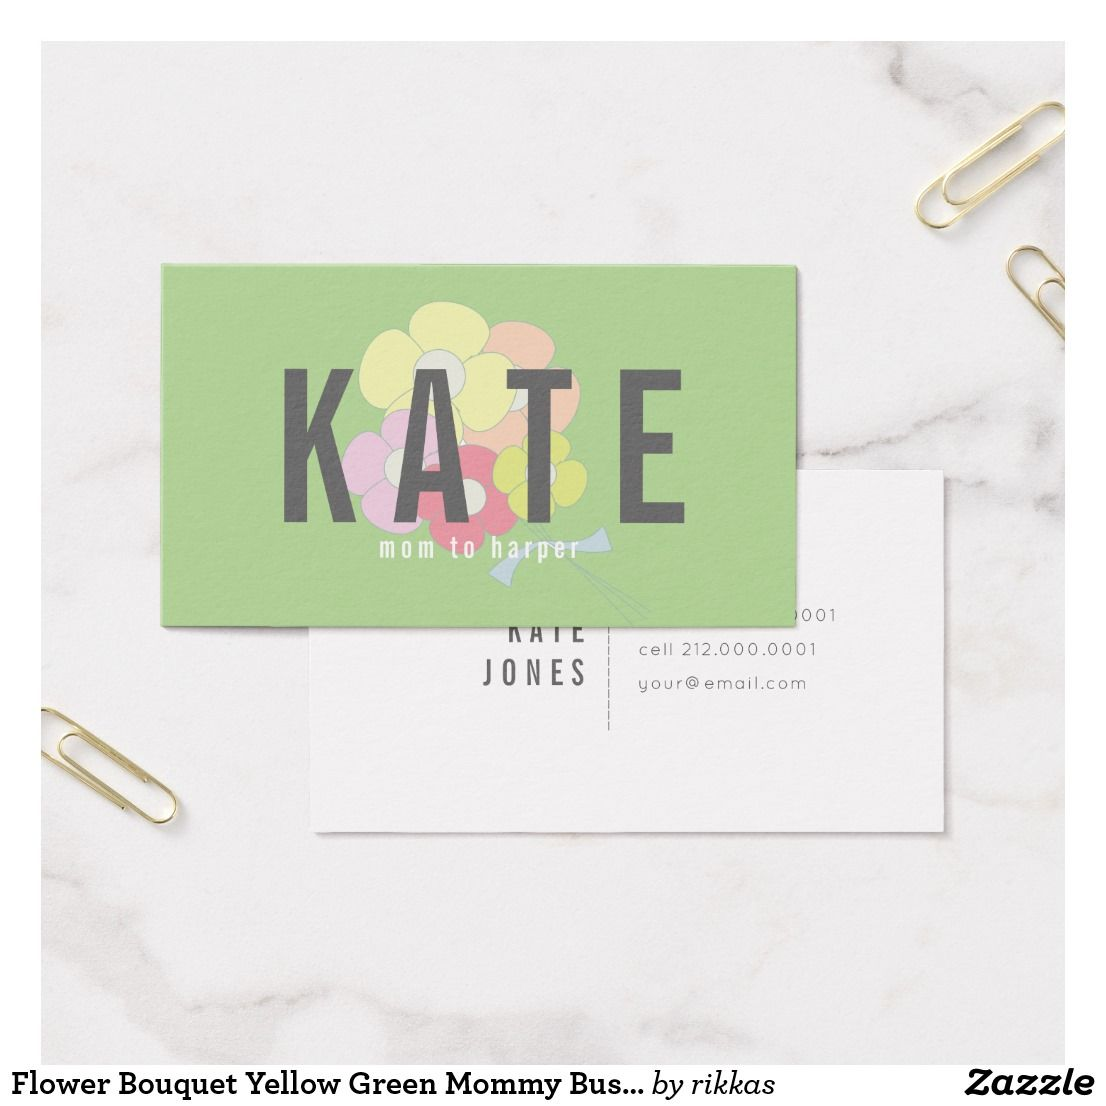 Flower Bouquet Yellow Green Mommy Business Card | Flower bouquets ...